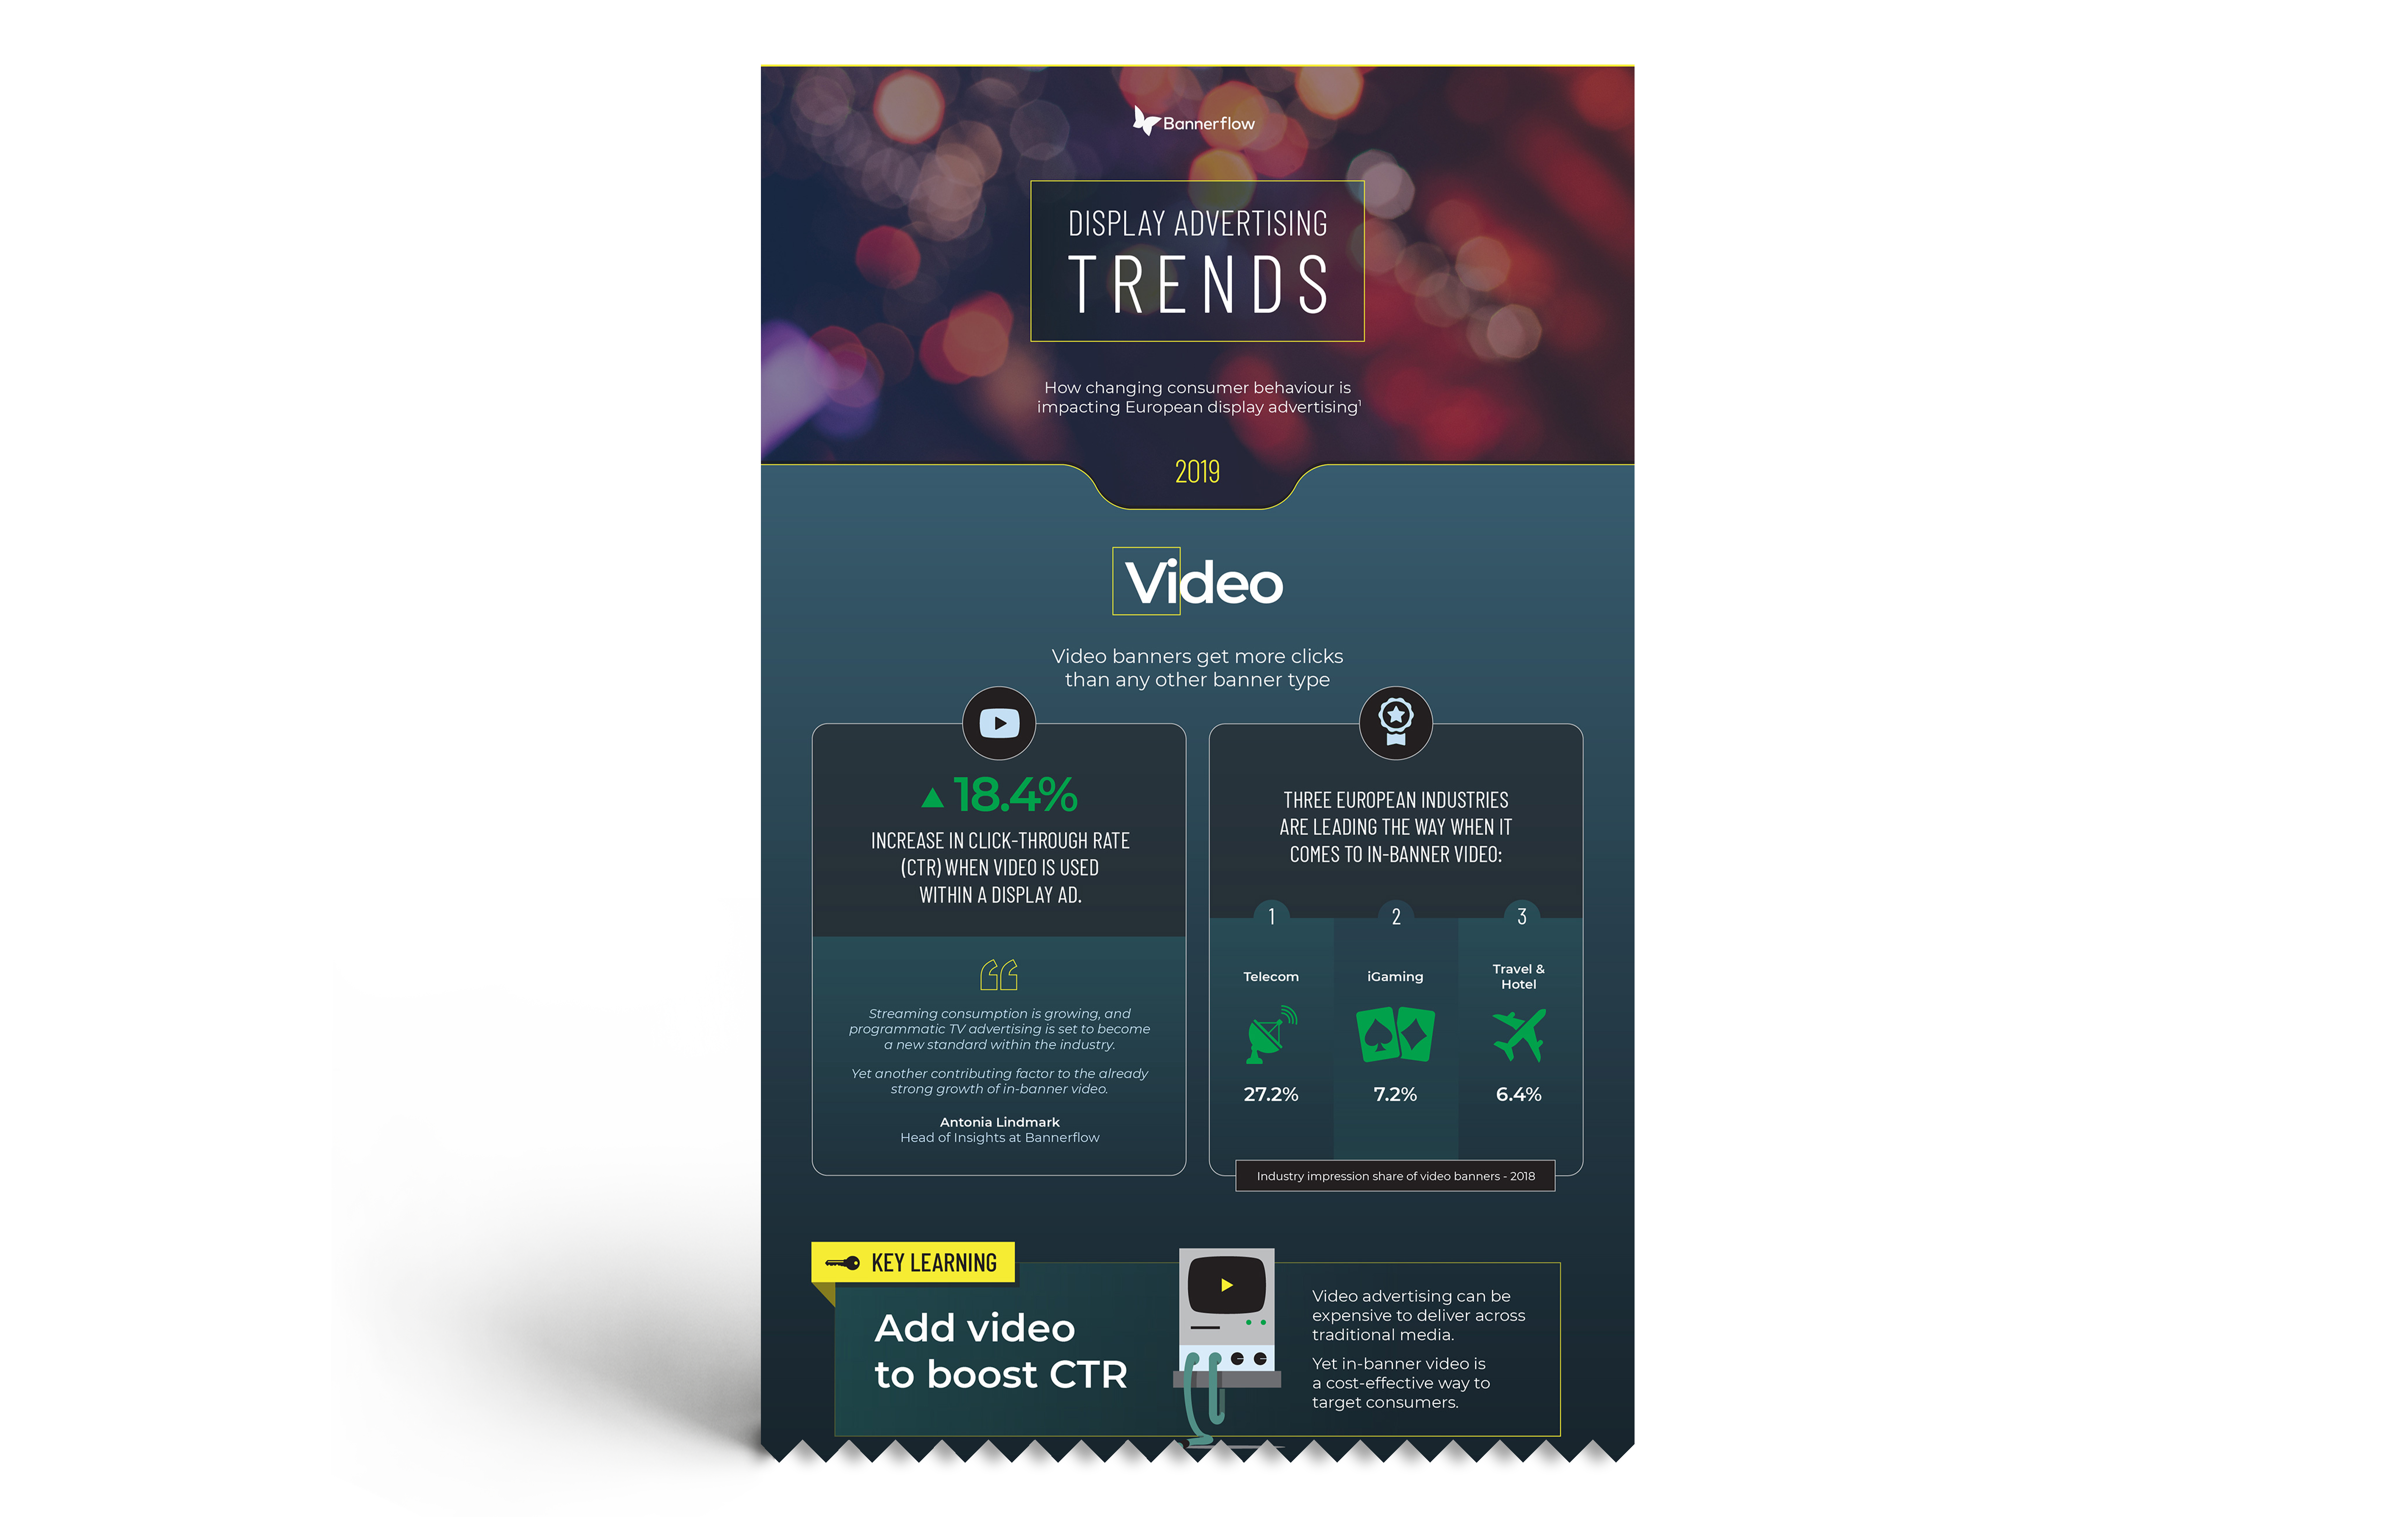 Display advertising trends: The 2019 infographic